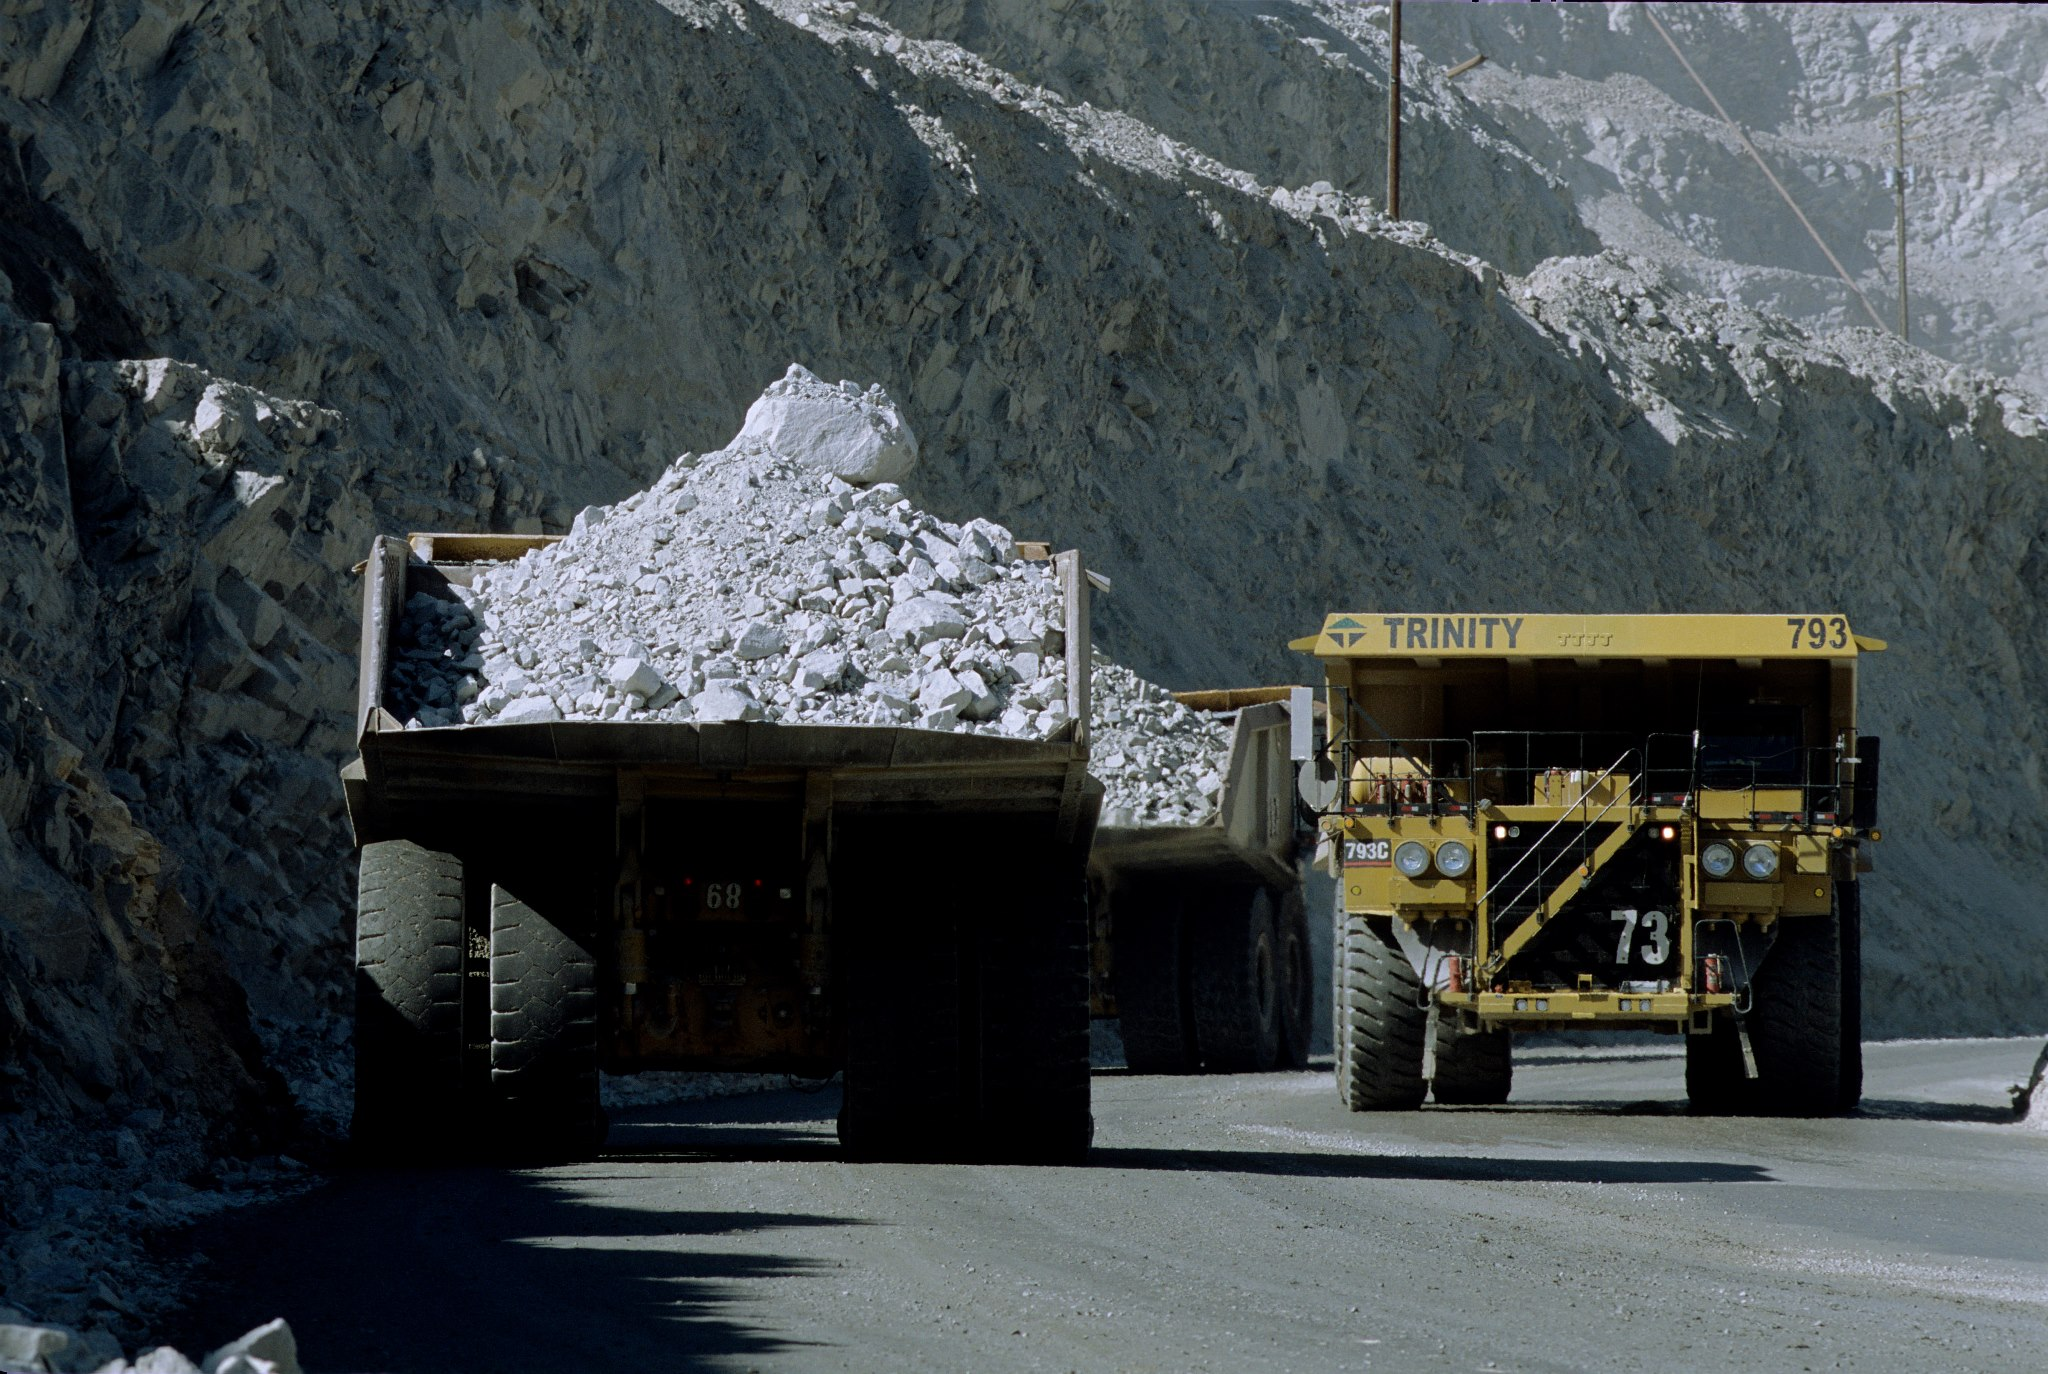 Kamloops at the top of B.C mining industry supplier list